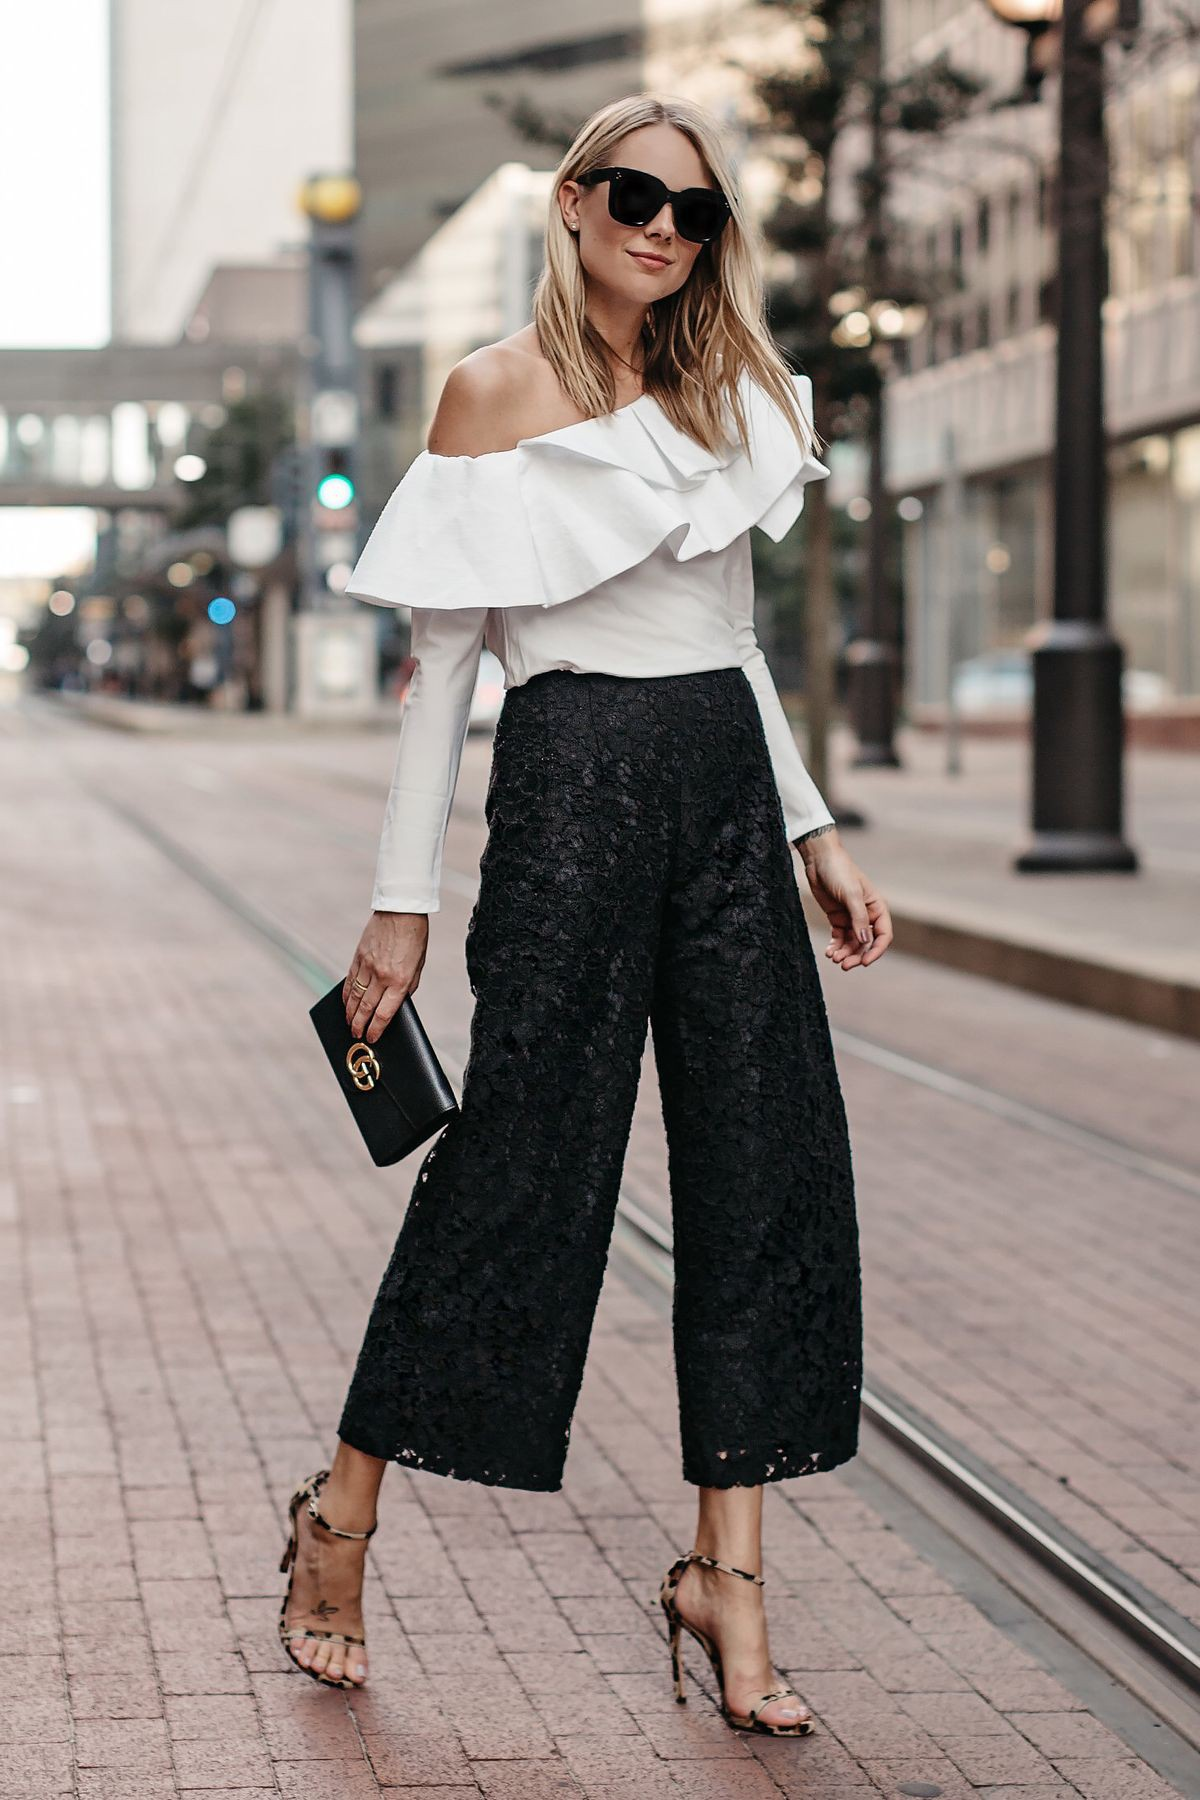 Fashionnova black lace culottes, street fashion, casual wear